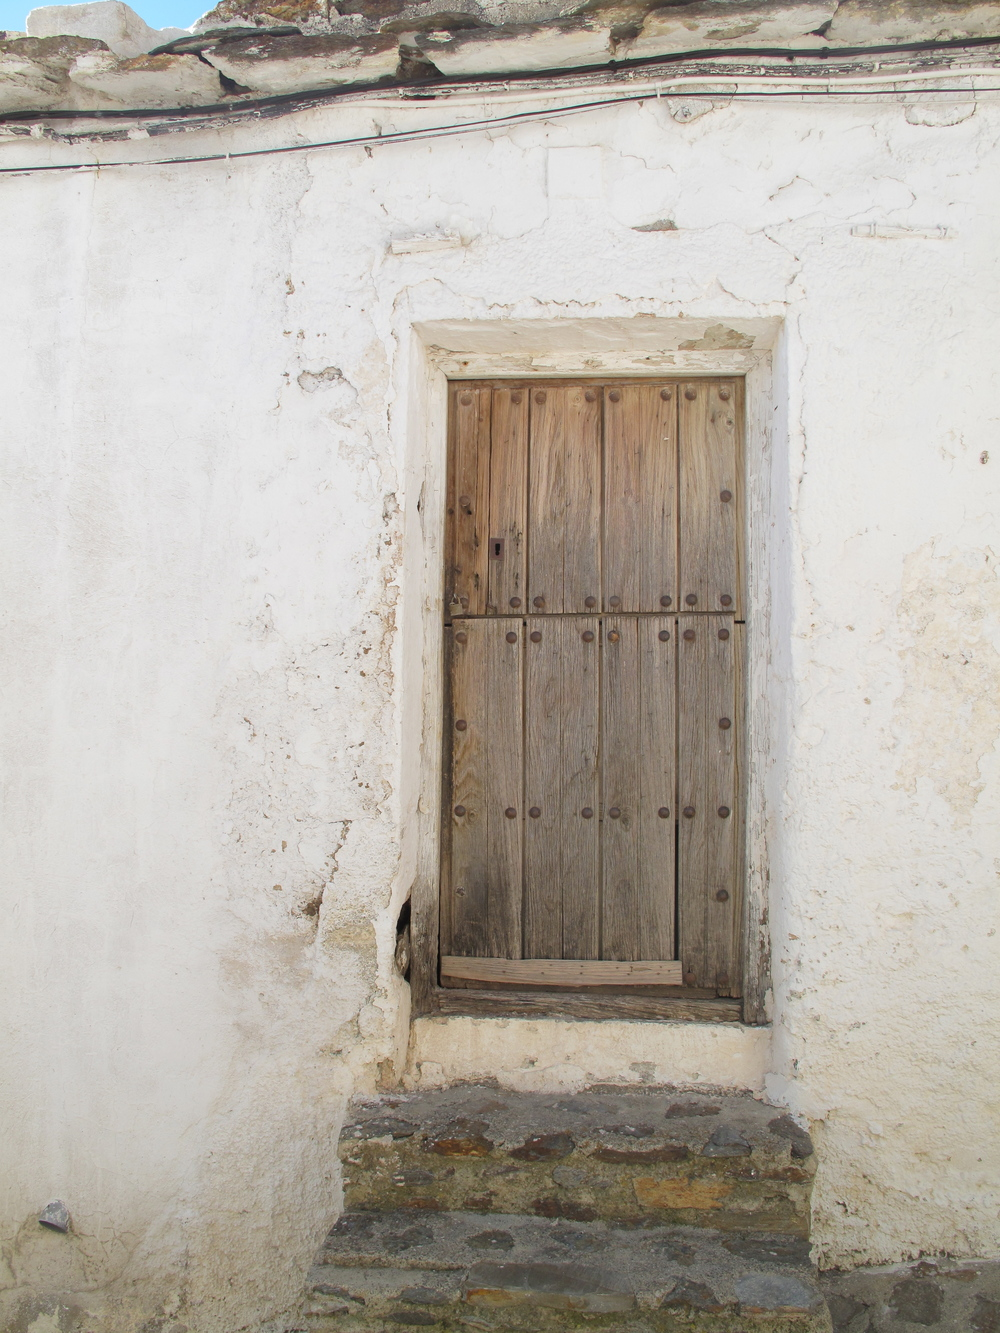 Little rustic wooden door in a tiny mountain town